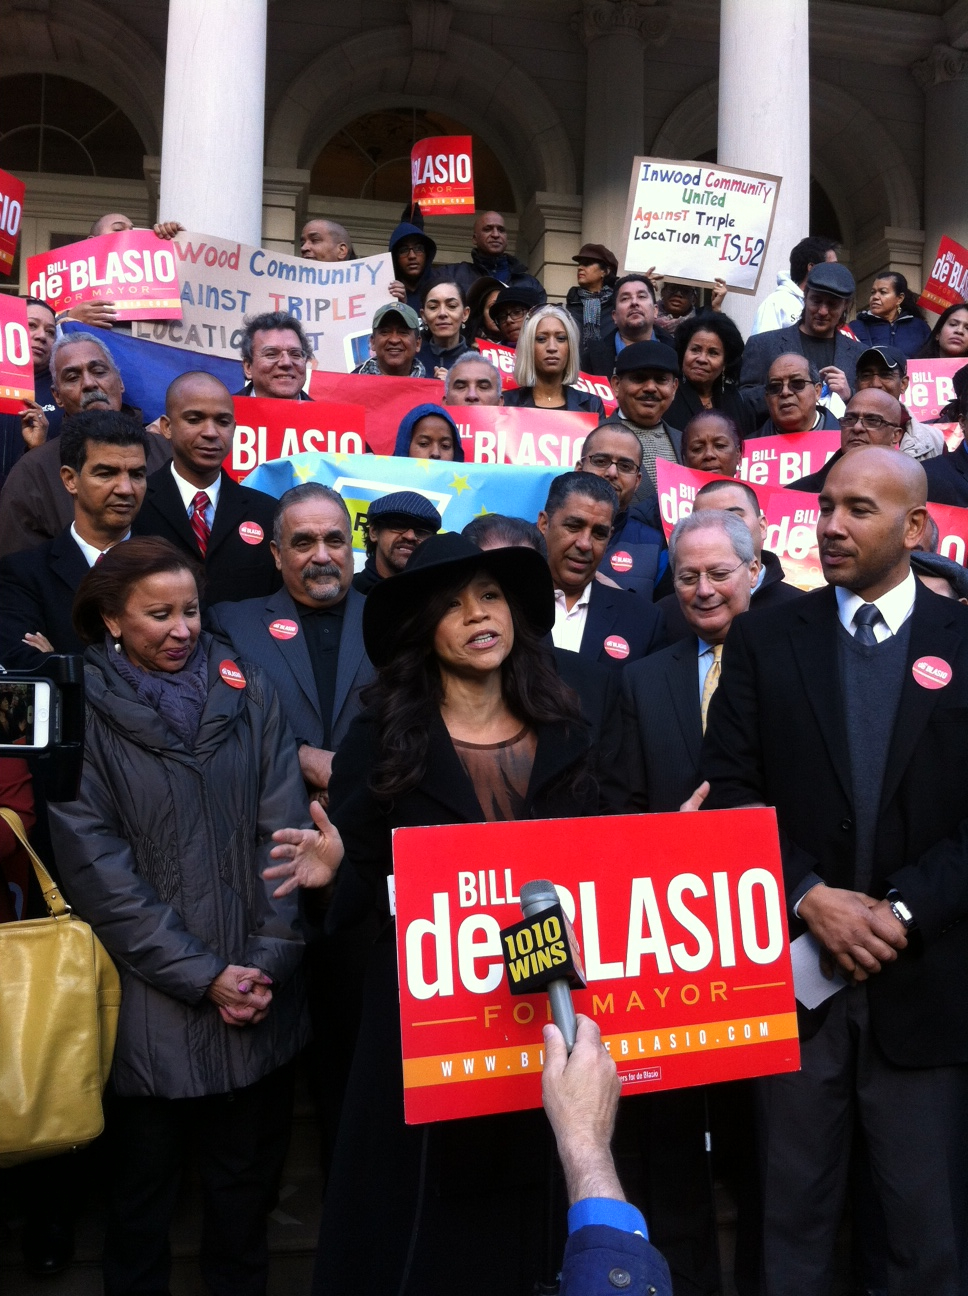 Rosie Perez speaks at Bill de Blasio rally.   ©2013 Rita Rivera